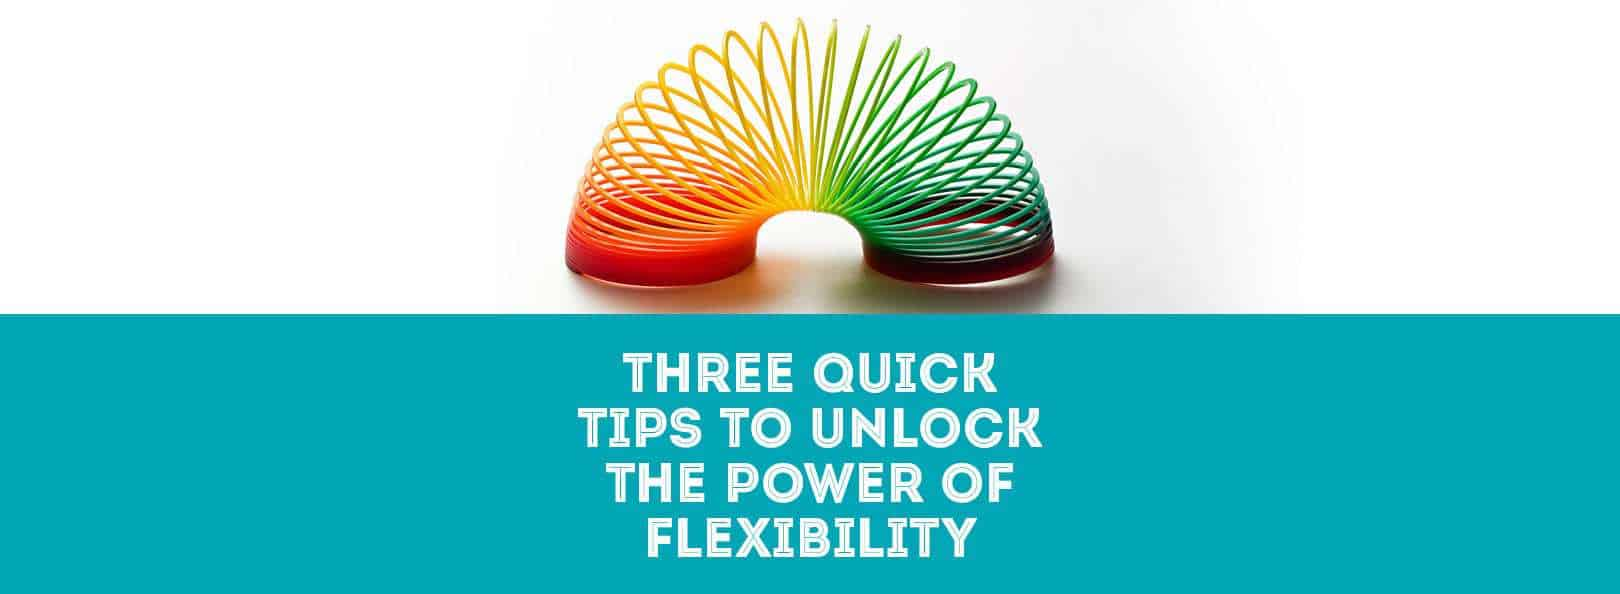 Three quick tips to unlock the power of flexibility